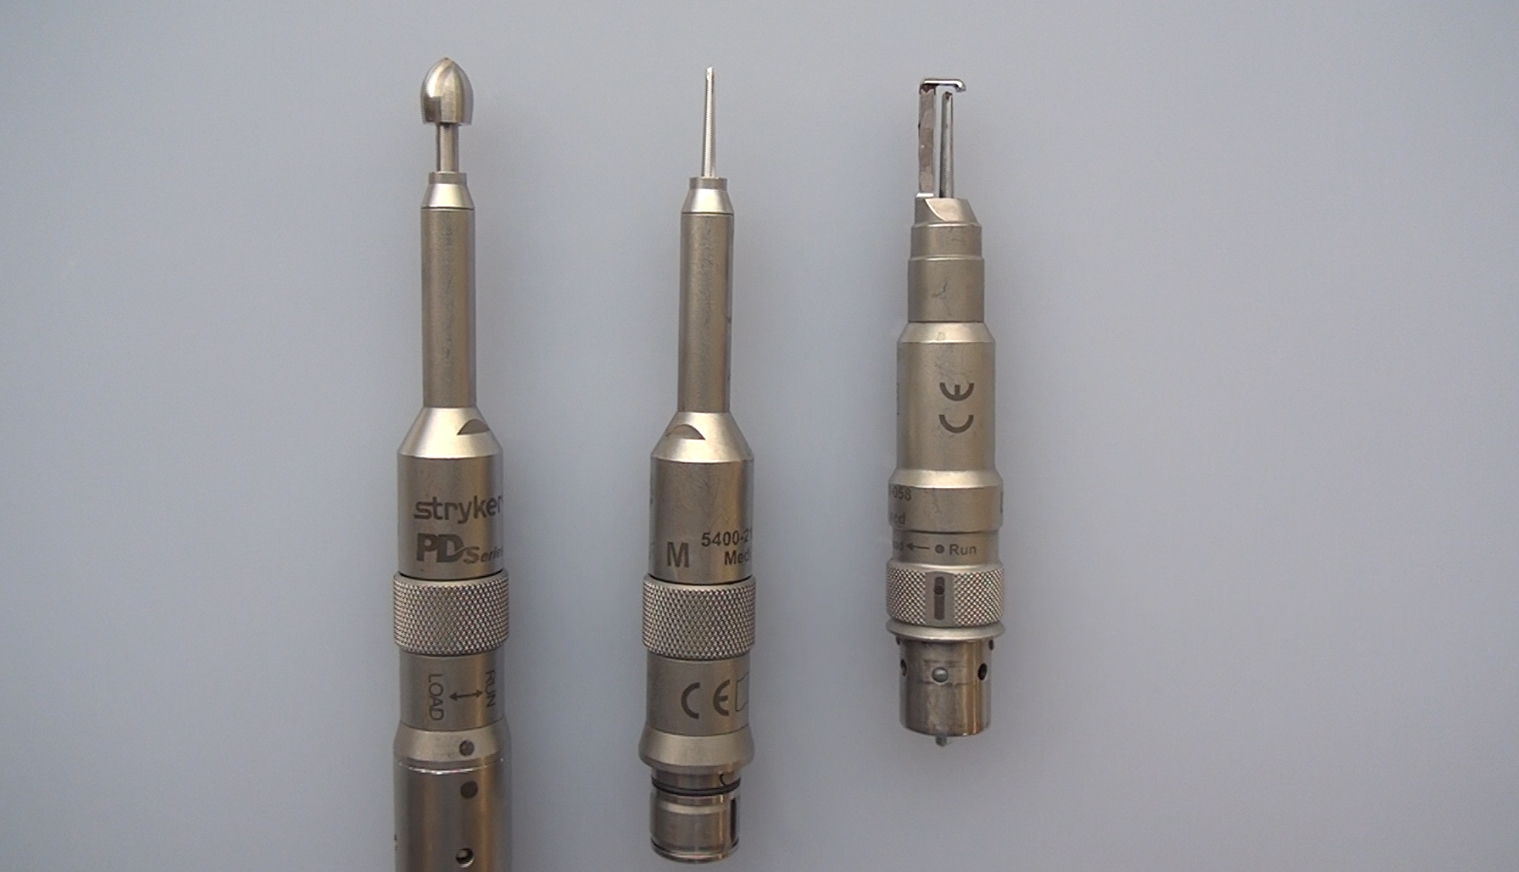 Figure 6: Burr holes are commonly made with a perforator clutch drill bit. These drill bits have an automatic stop mechanism when the inner table is penetrated and are typically 14 mm in diameter.  I prefer making burr holes with an acorn-shaped bit because the burr hole size can be controlled more effectively. The automatic stop mechanism of the perforator is not always sensitive or reliable enough to stop on time; this is especially problematic during placement of burr holes over the venous sinuses. For this reason, I routinely use an acorn bit.